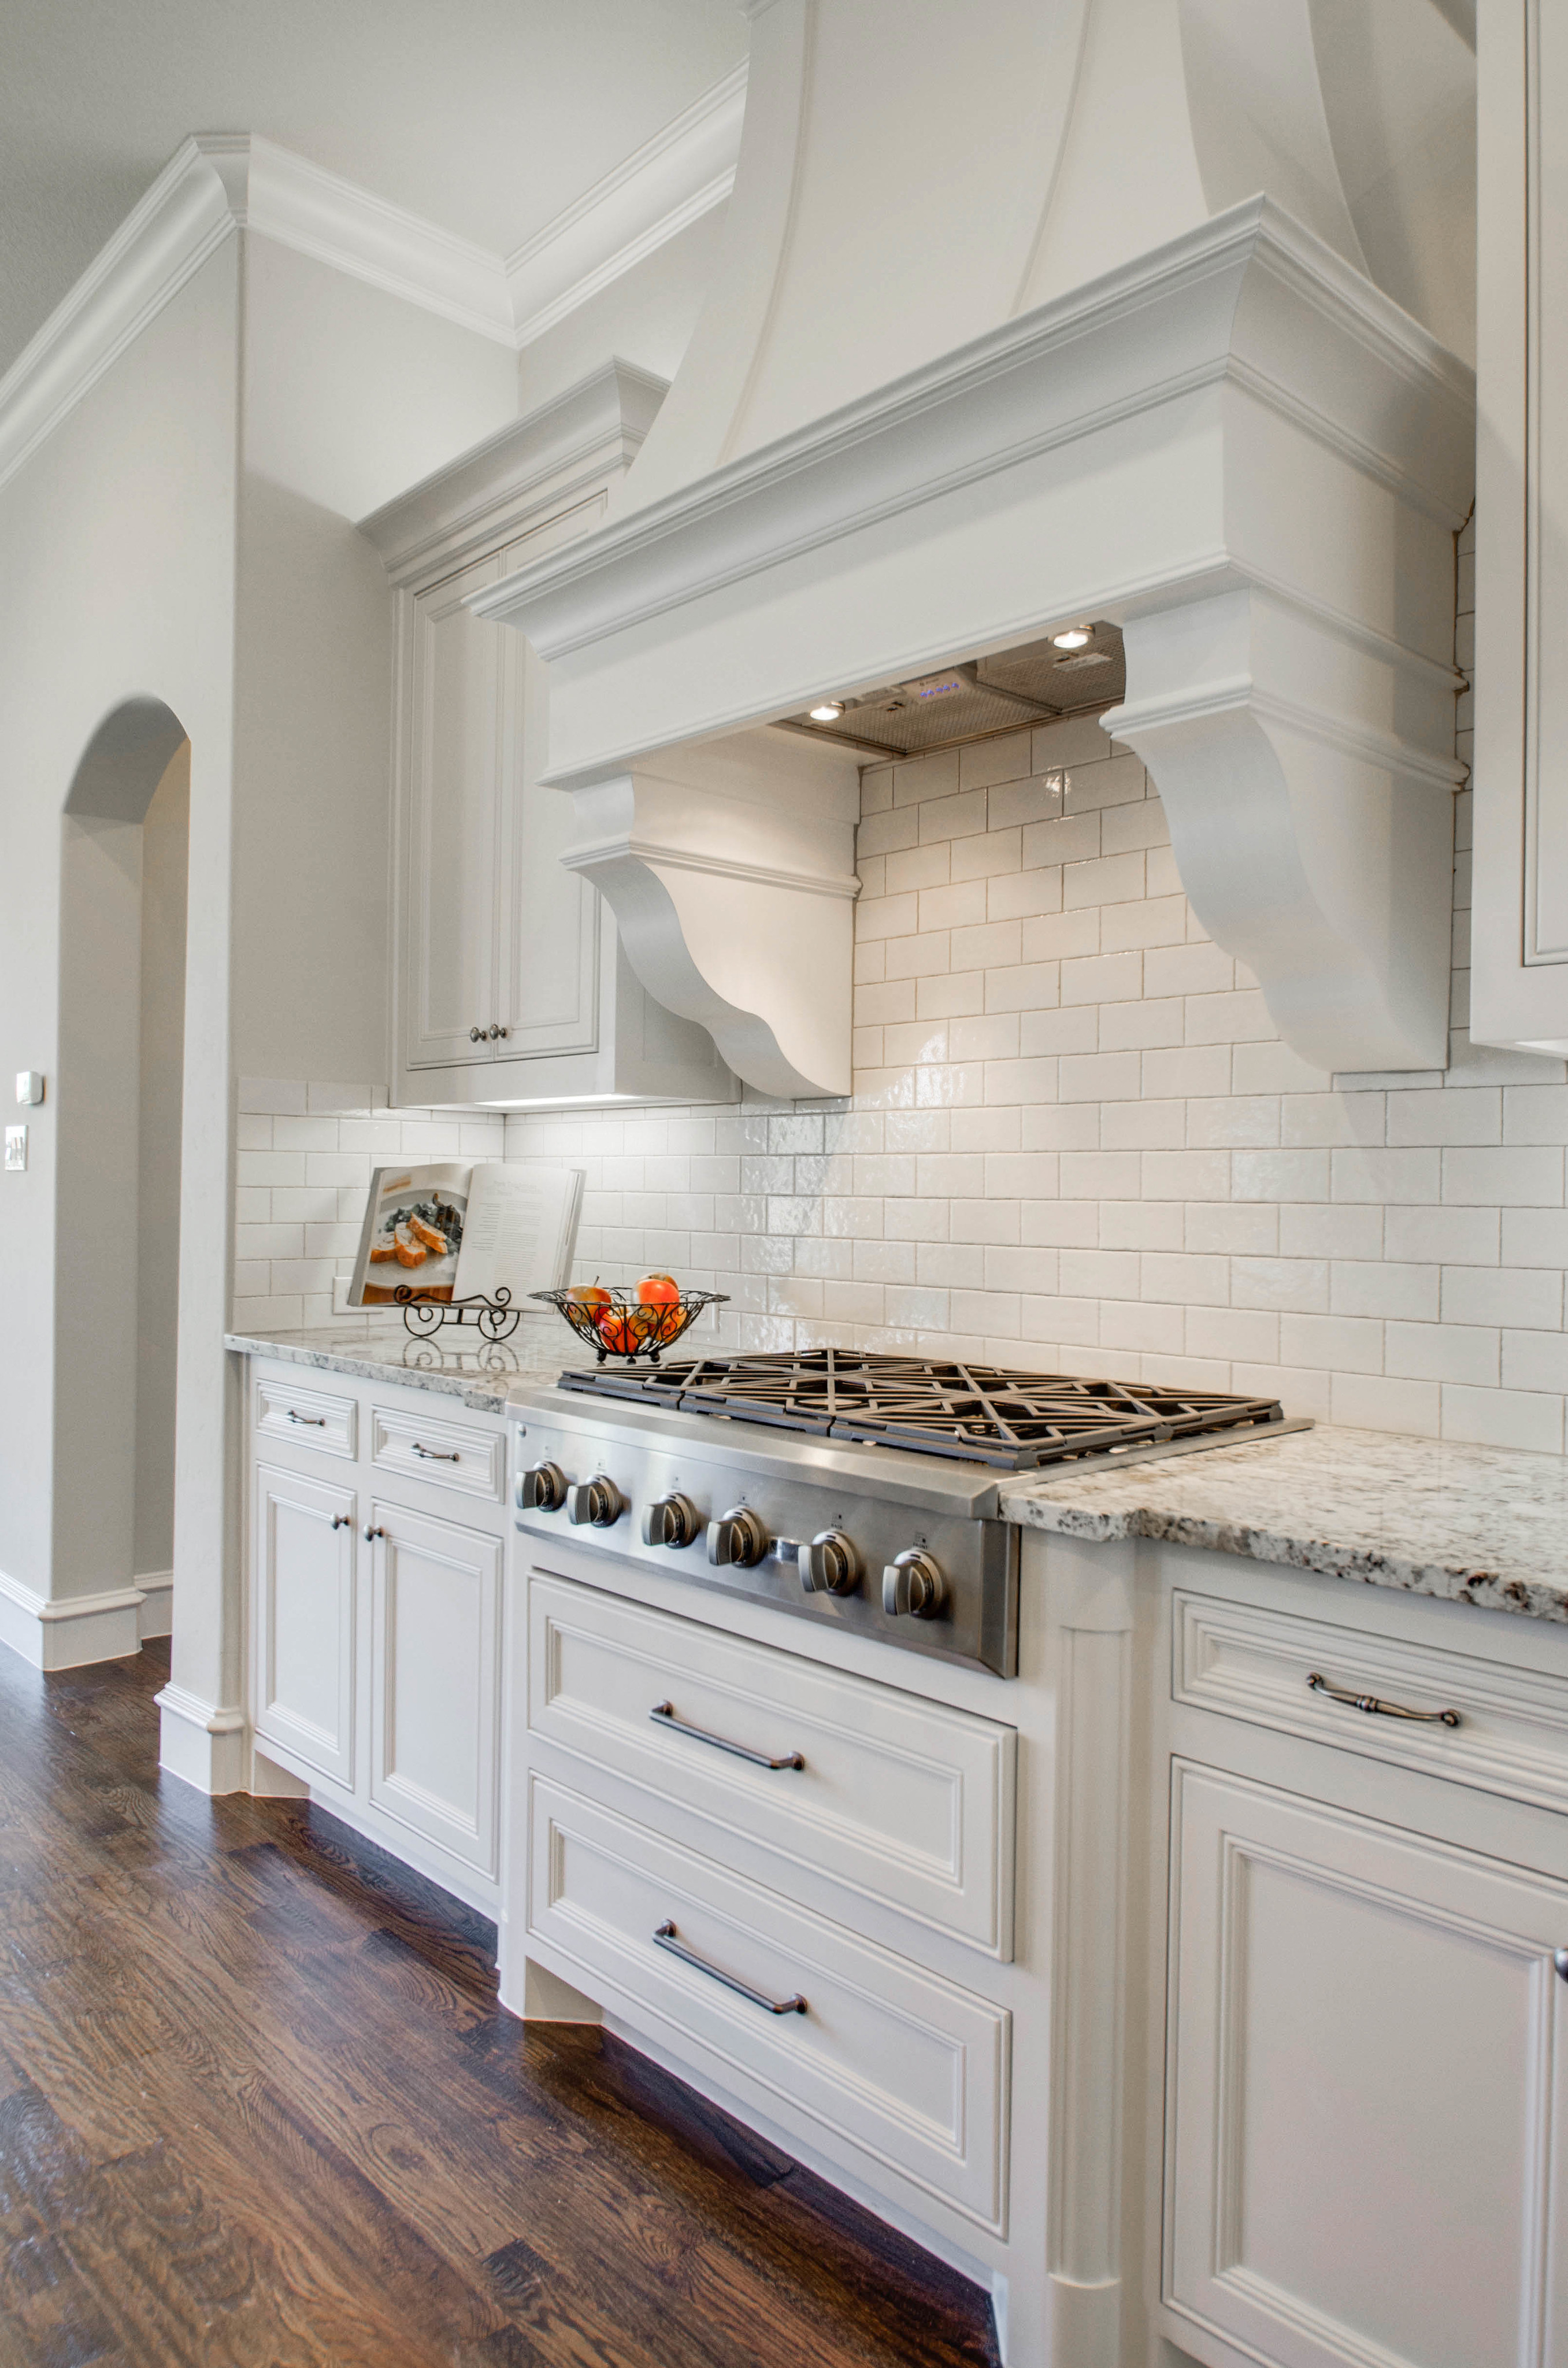 Kitchen Countertop Stores Near Me : Texas Counter Fitters Coupons near me in Garland 8coupons